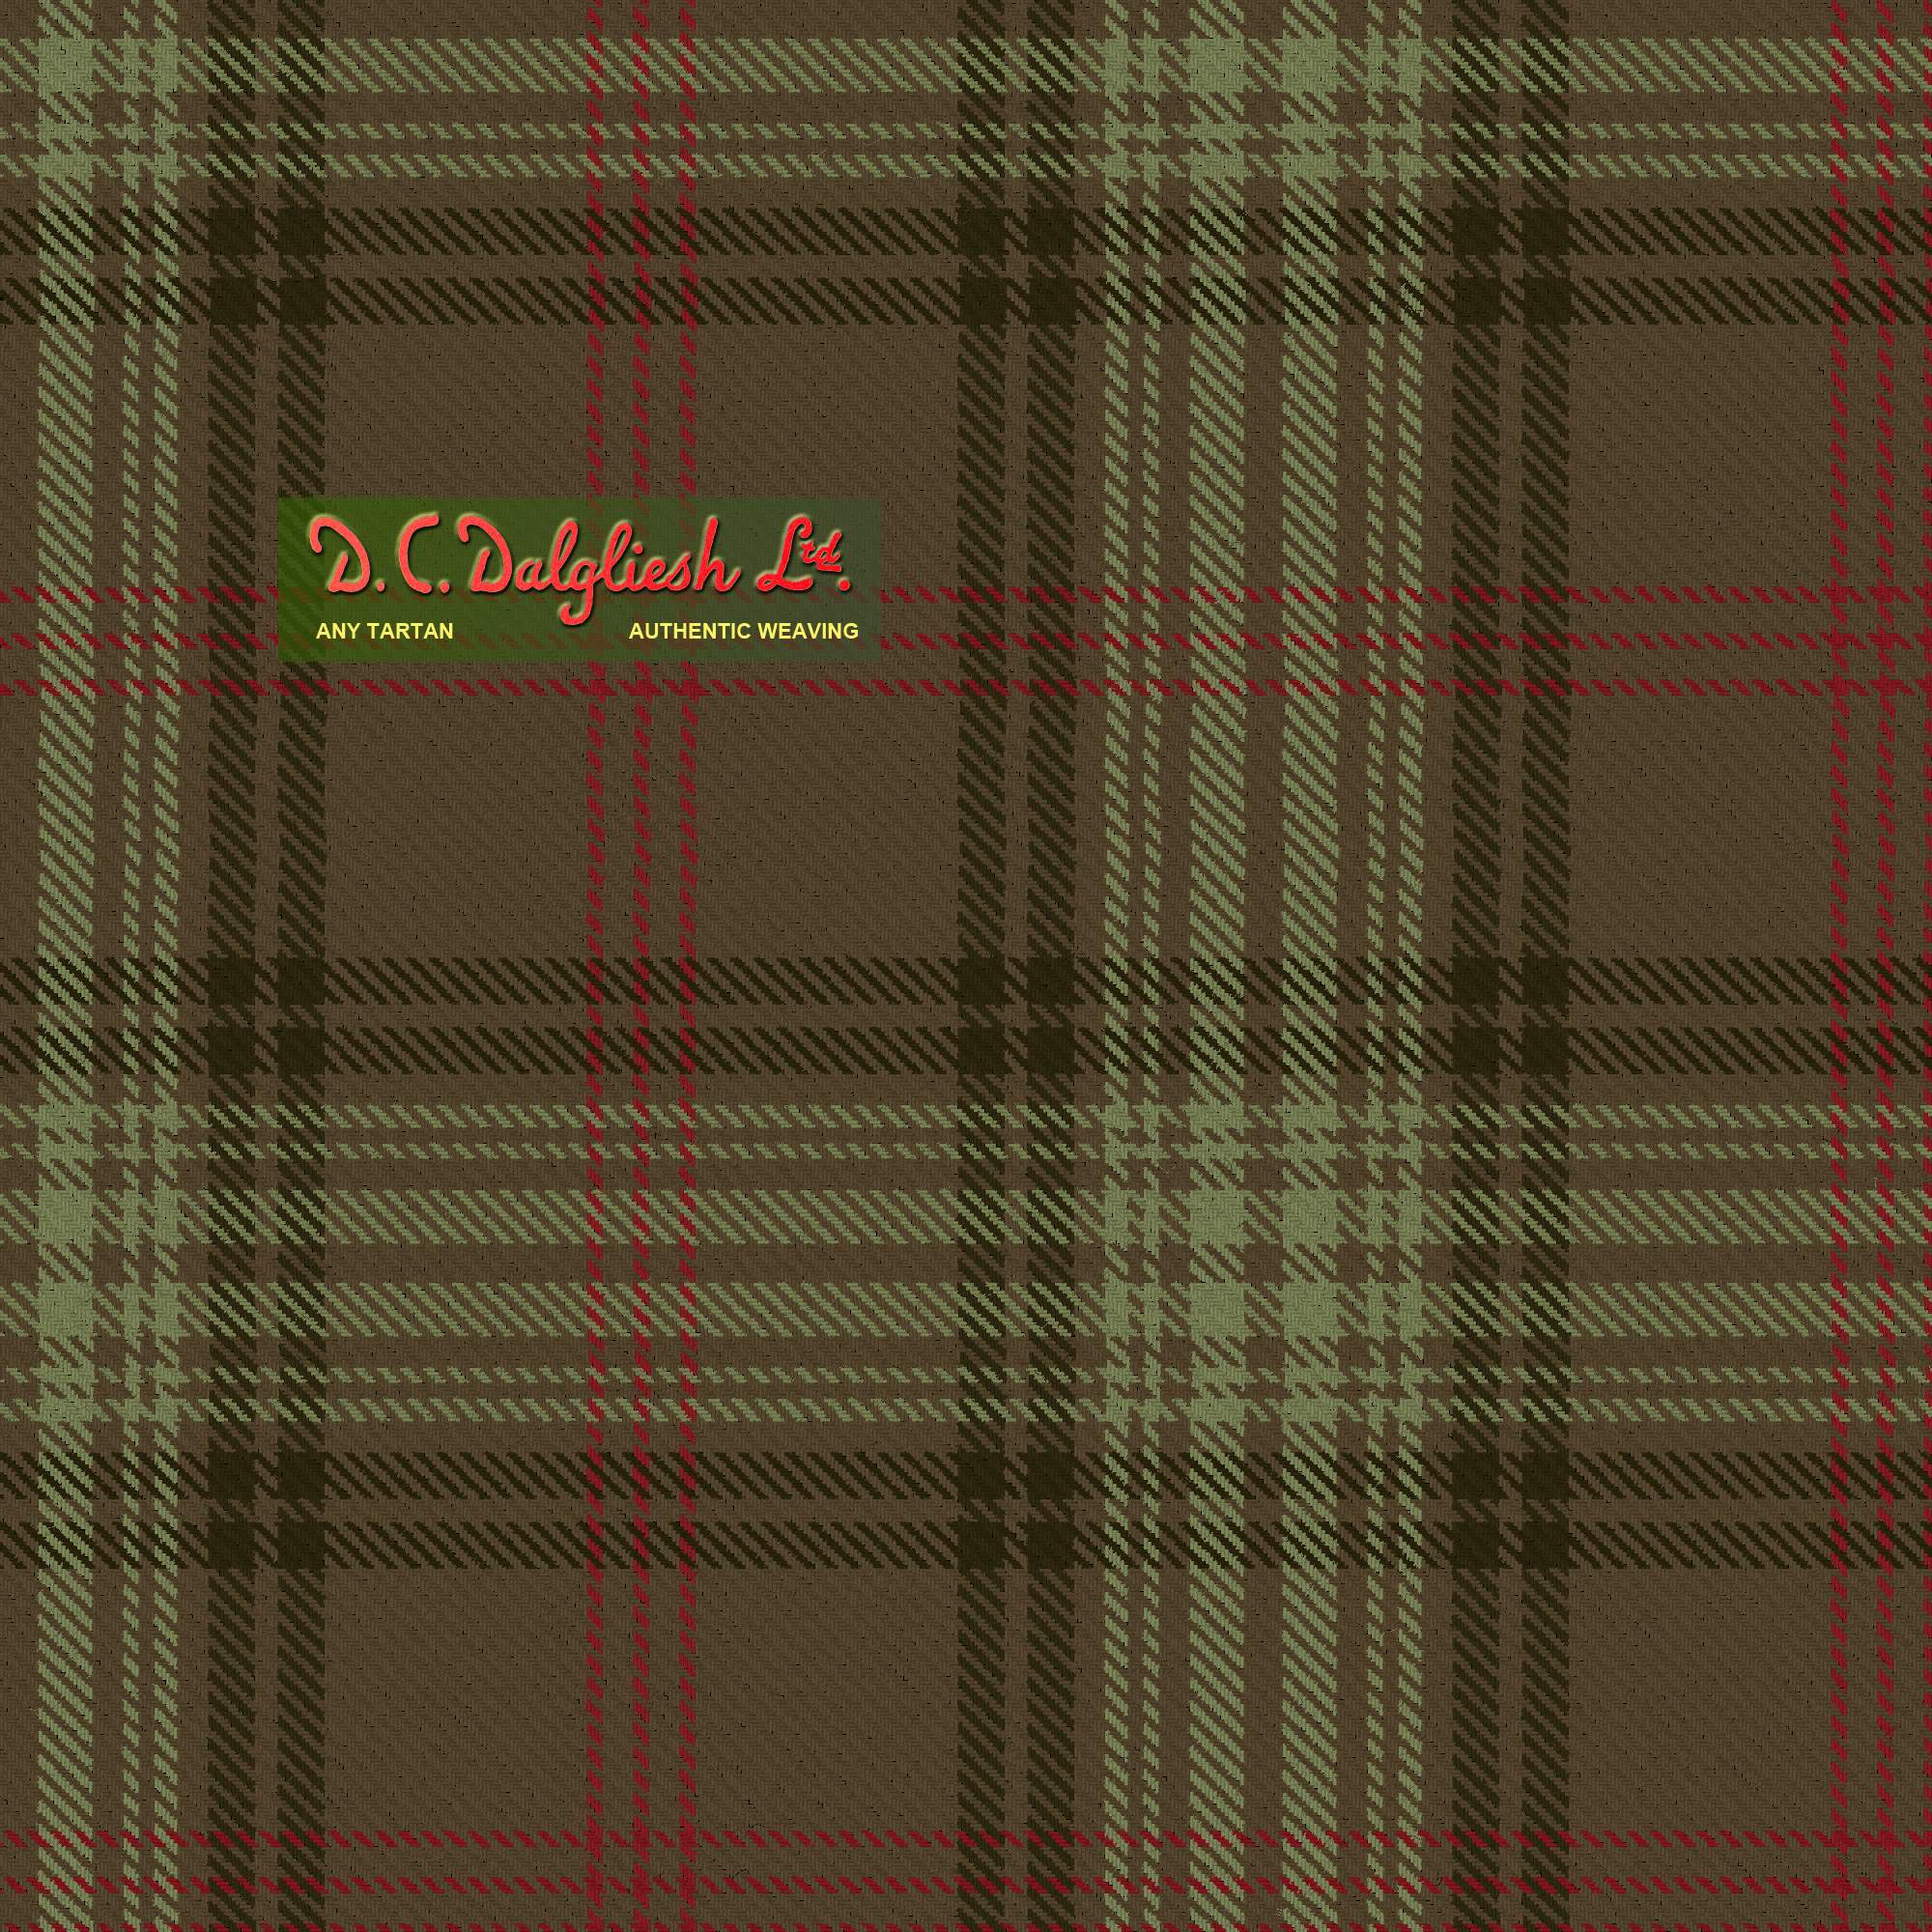 Ross Hunting Fabric By Dc Dalgliesh Hand Crafted Tartans